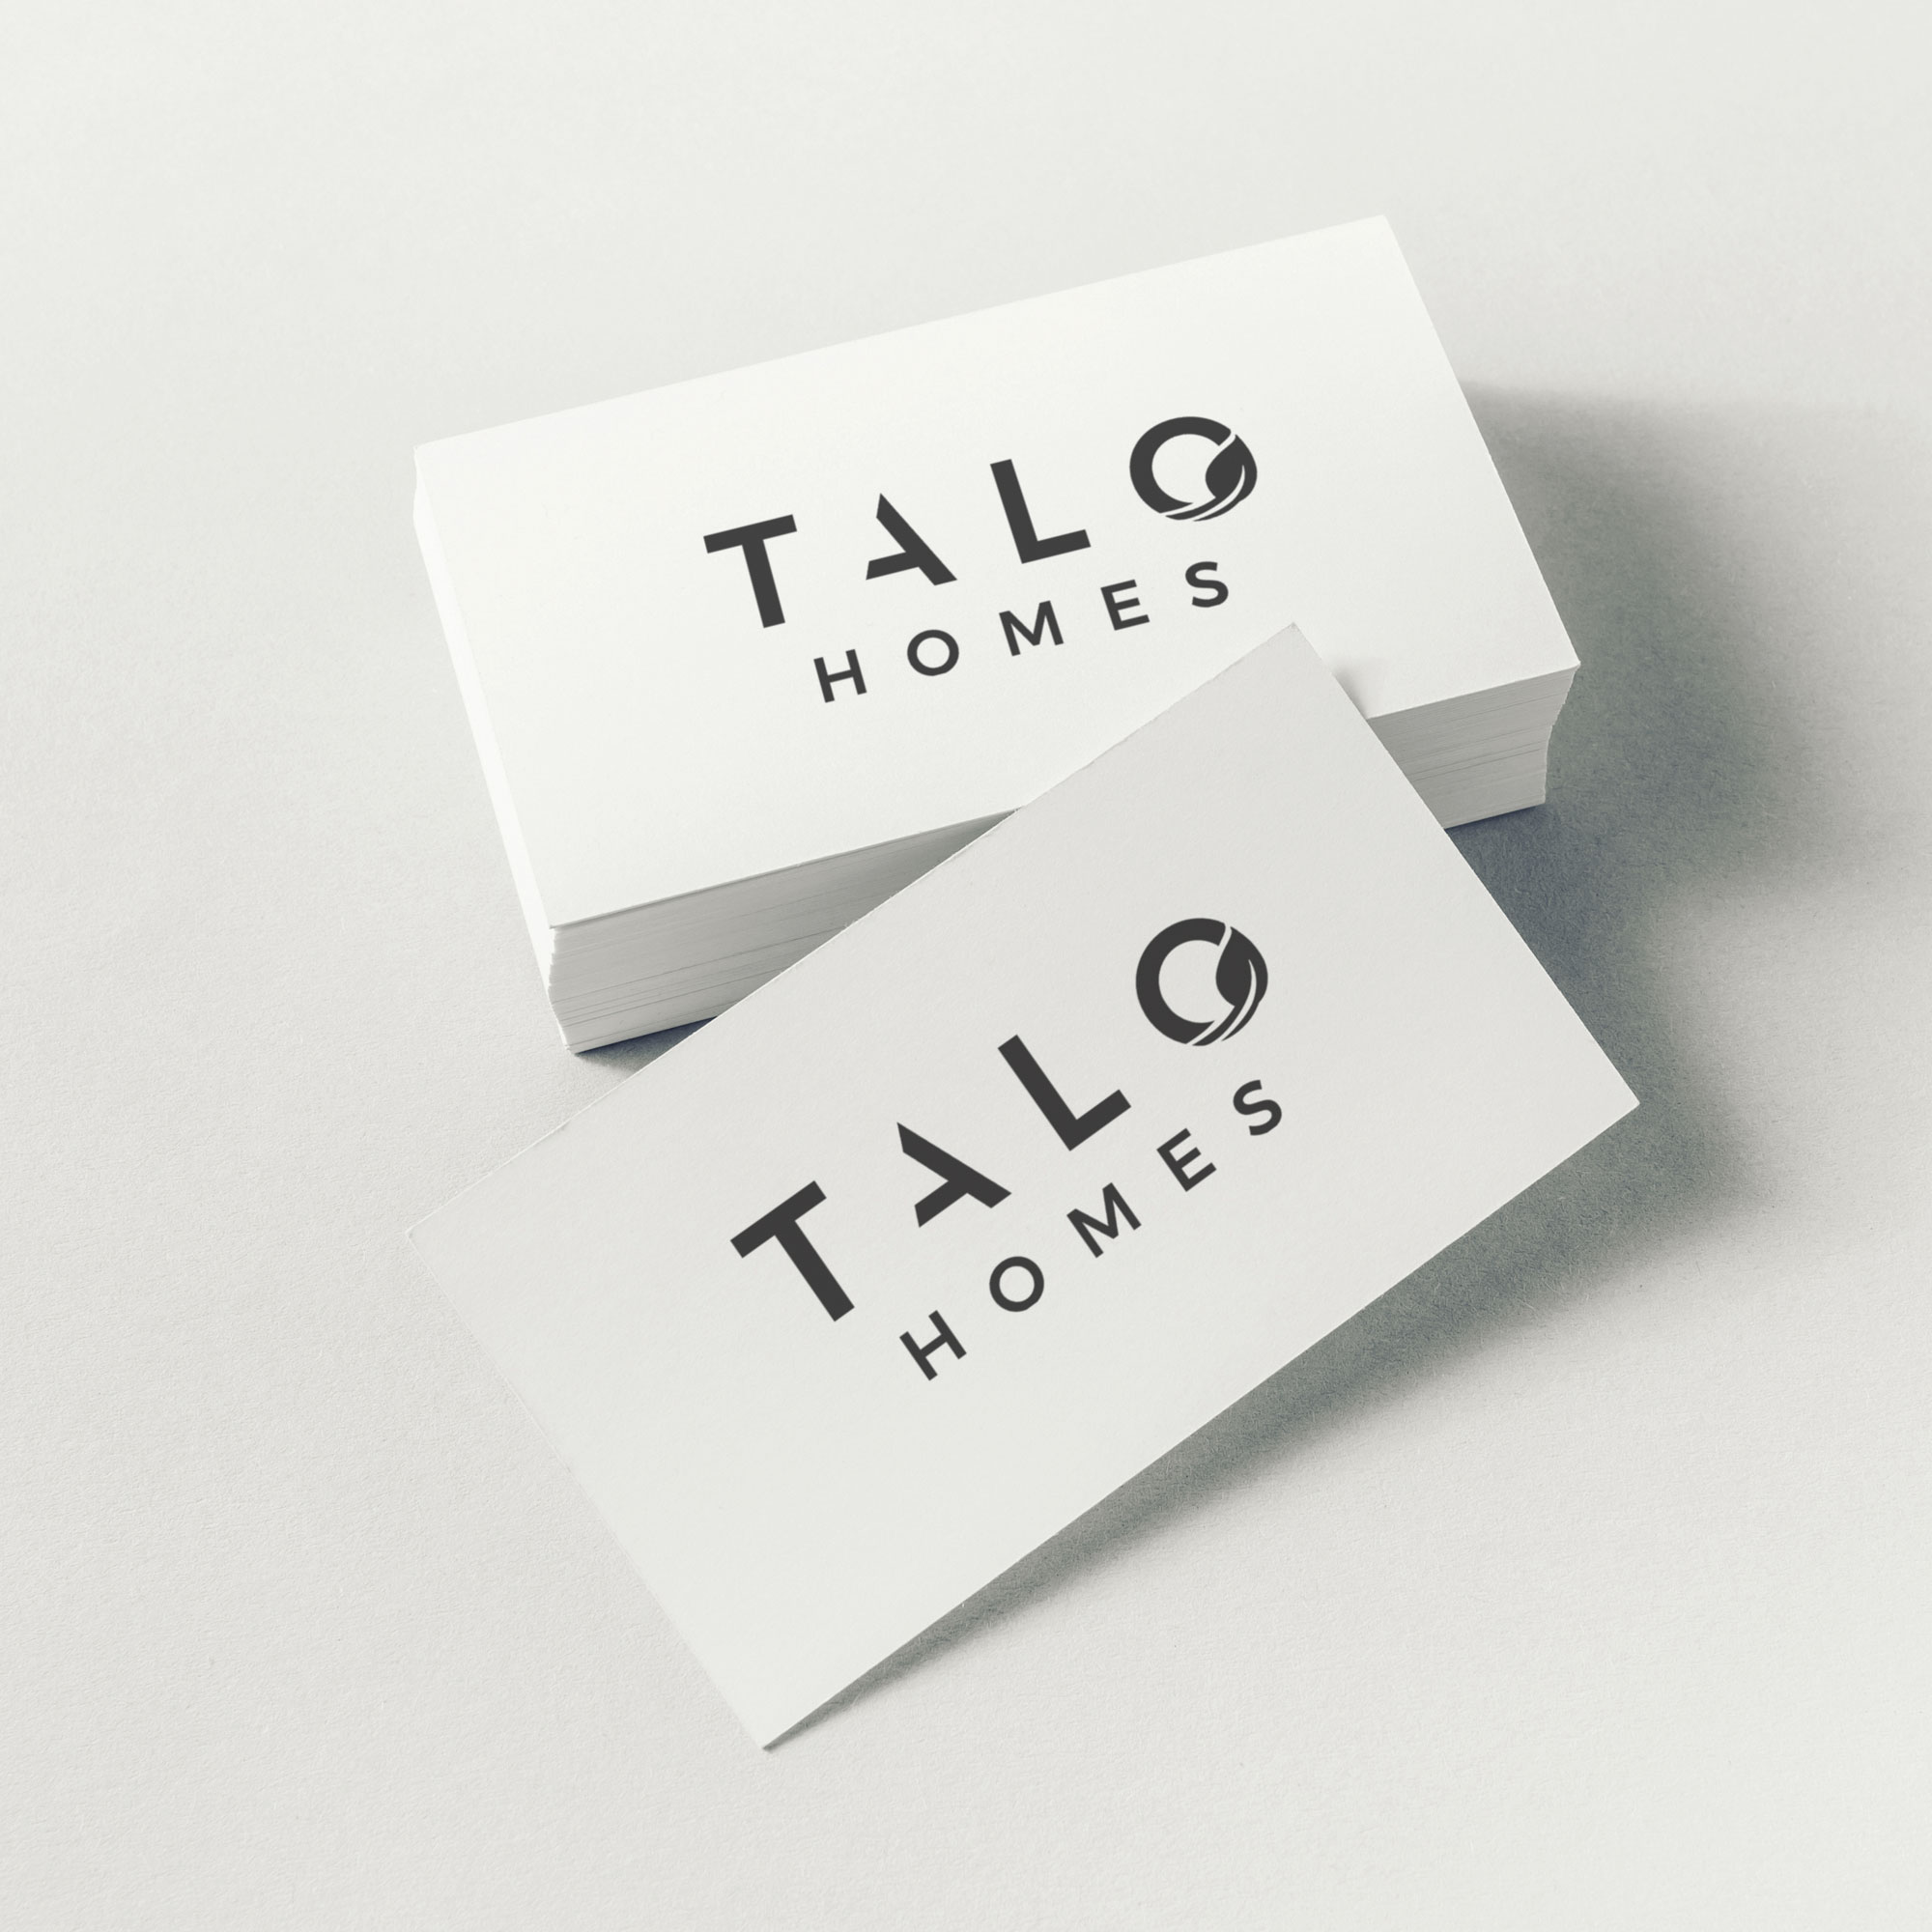 TALO Homes custom branding solution